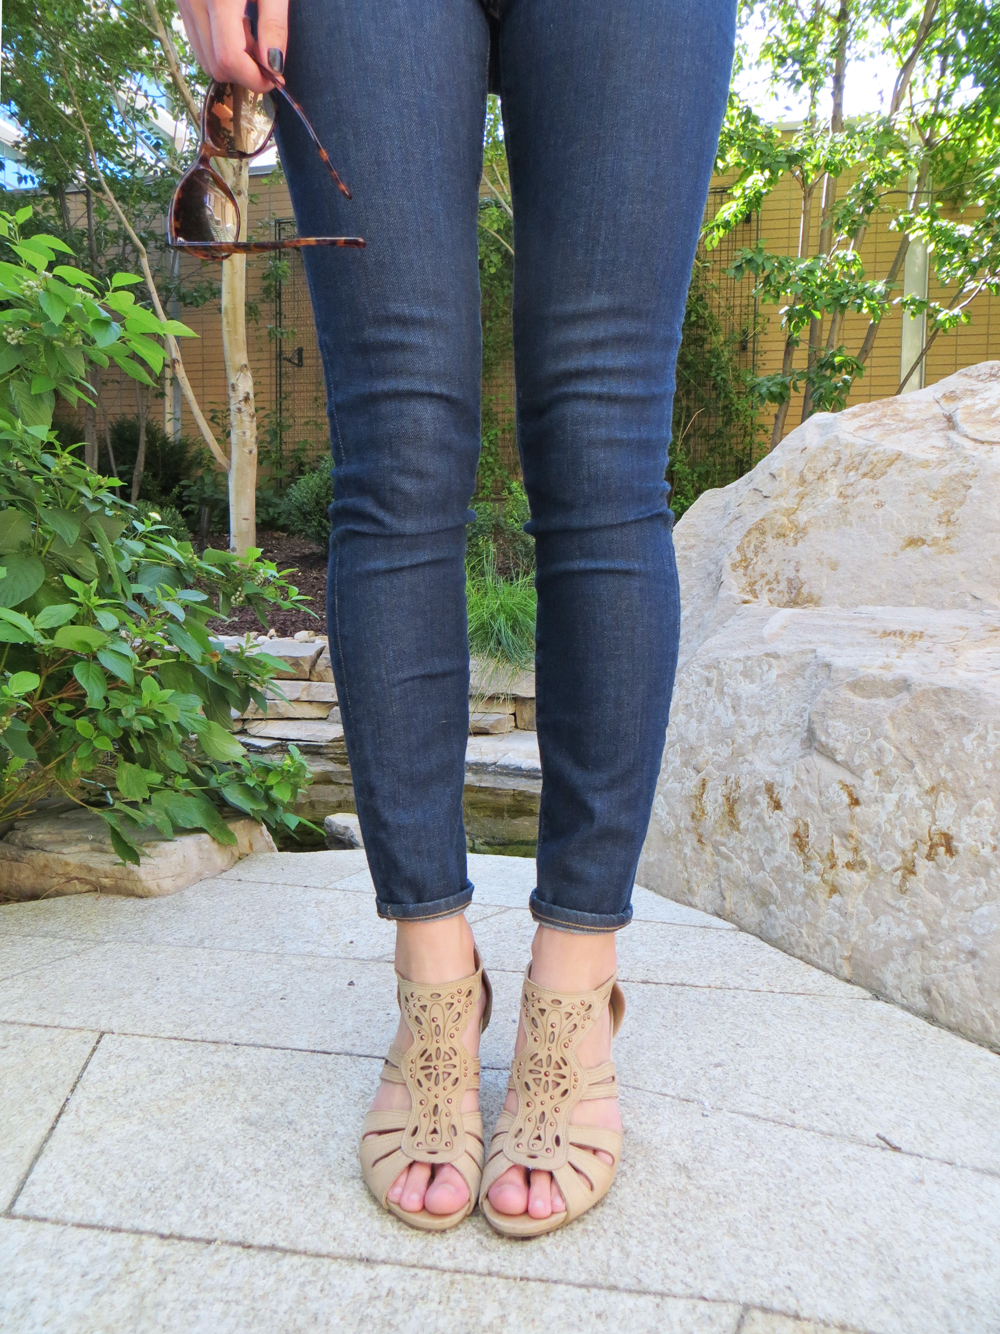 Madewell high riser skinny skinny jeans in Davis wash + Earthies 'Morolo' sandals -- Cotton Cashmere Cat Hair